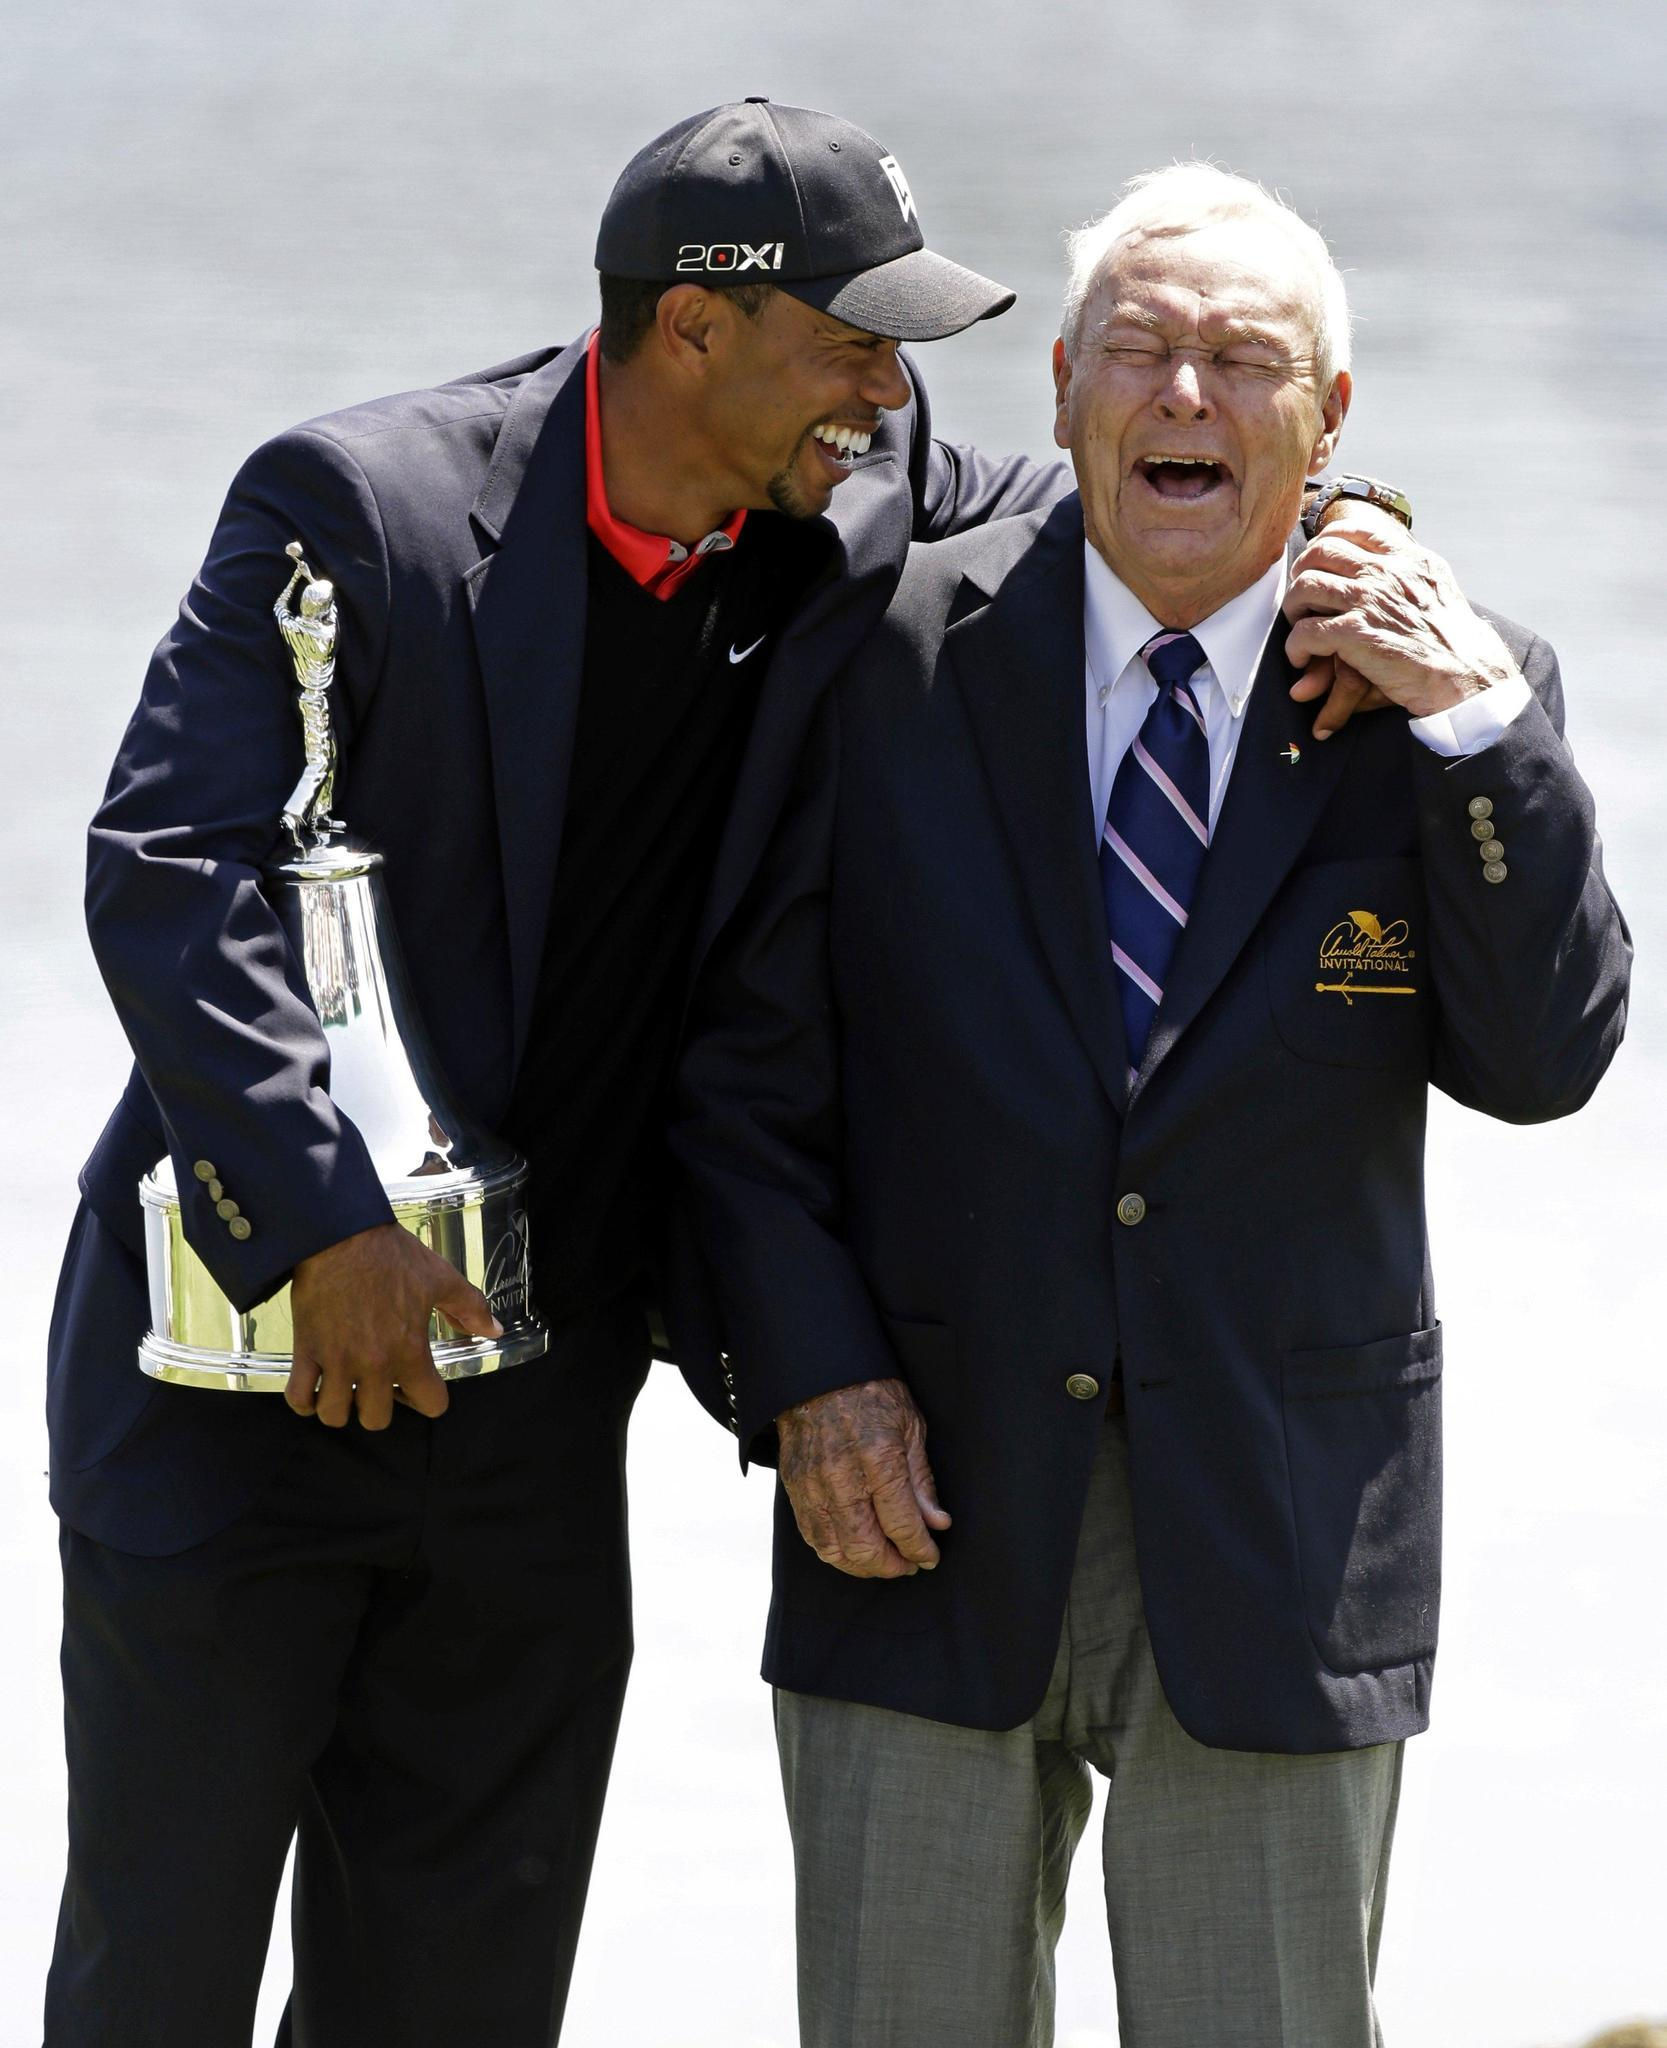 Tiger Woods to miss Arnold Palmer Invitational at Bay Hill - The Morning Call